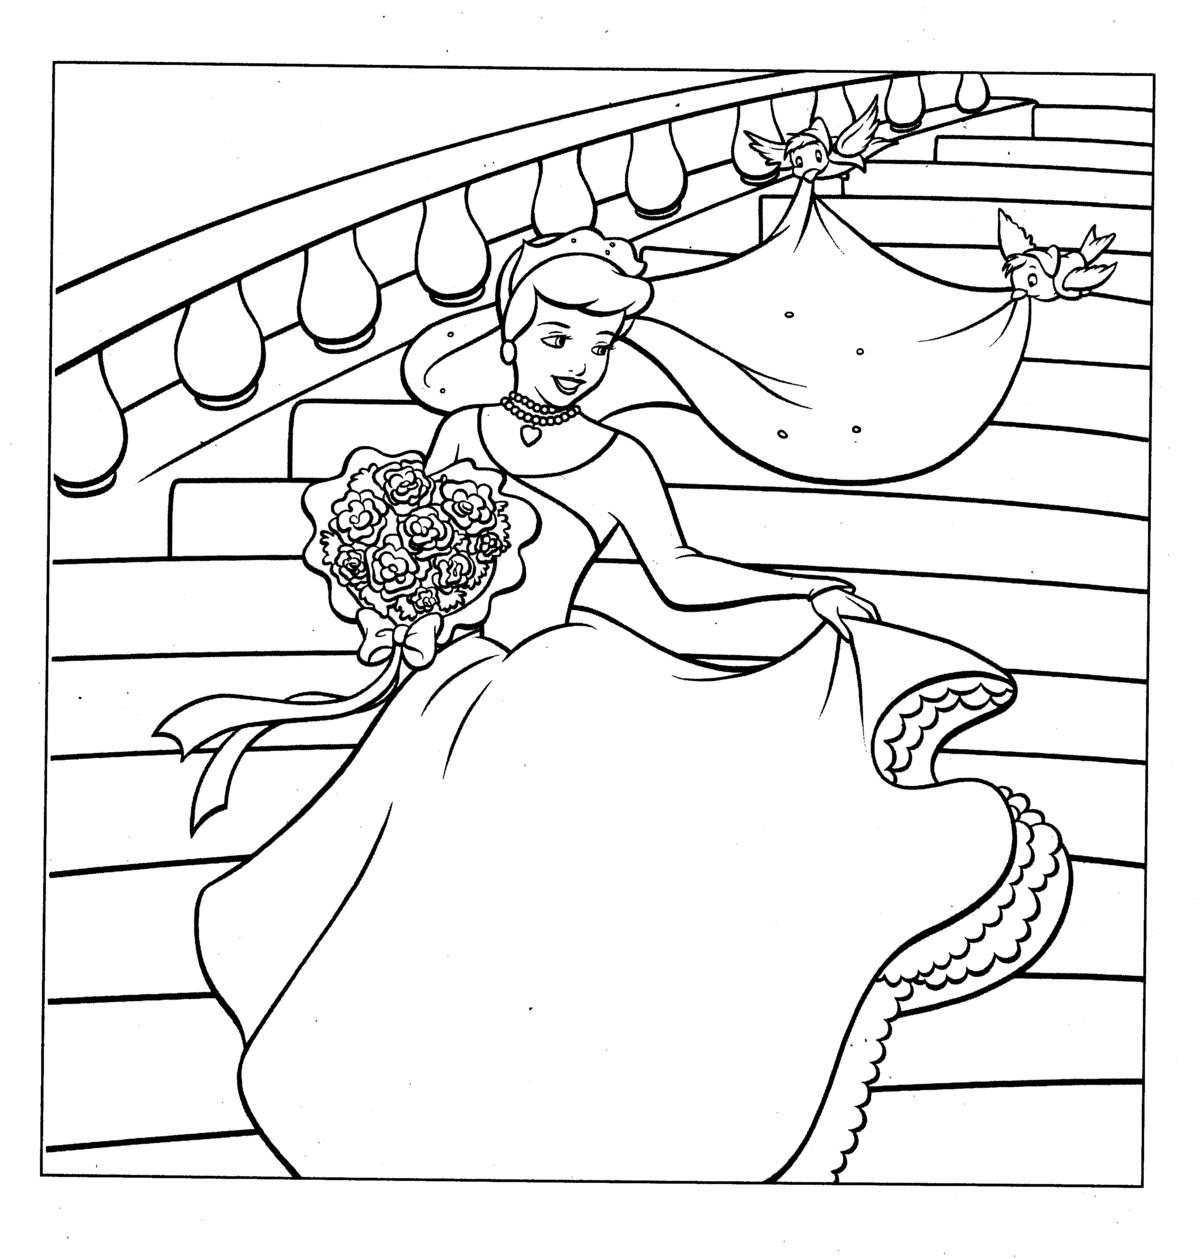 cinderfella coloring pages - photo#18